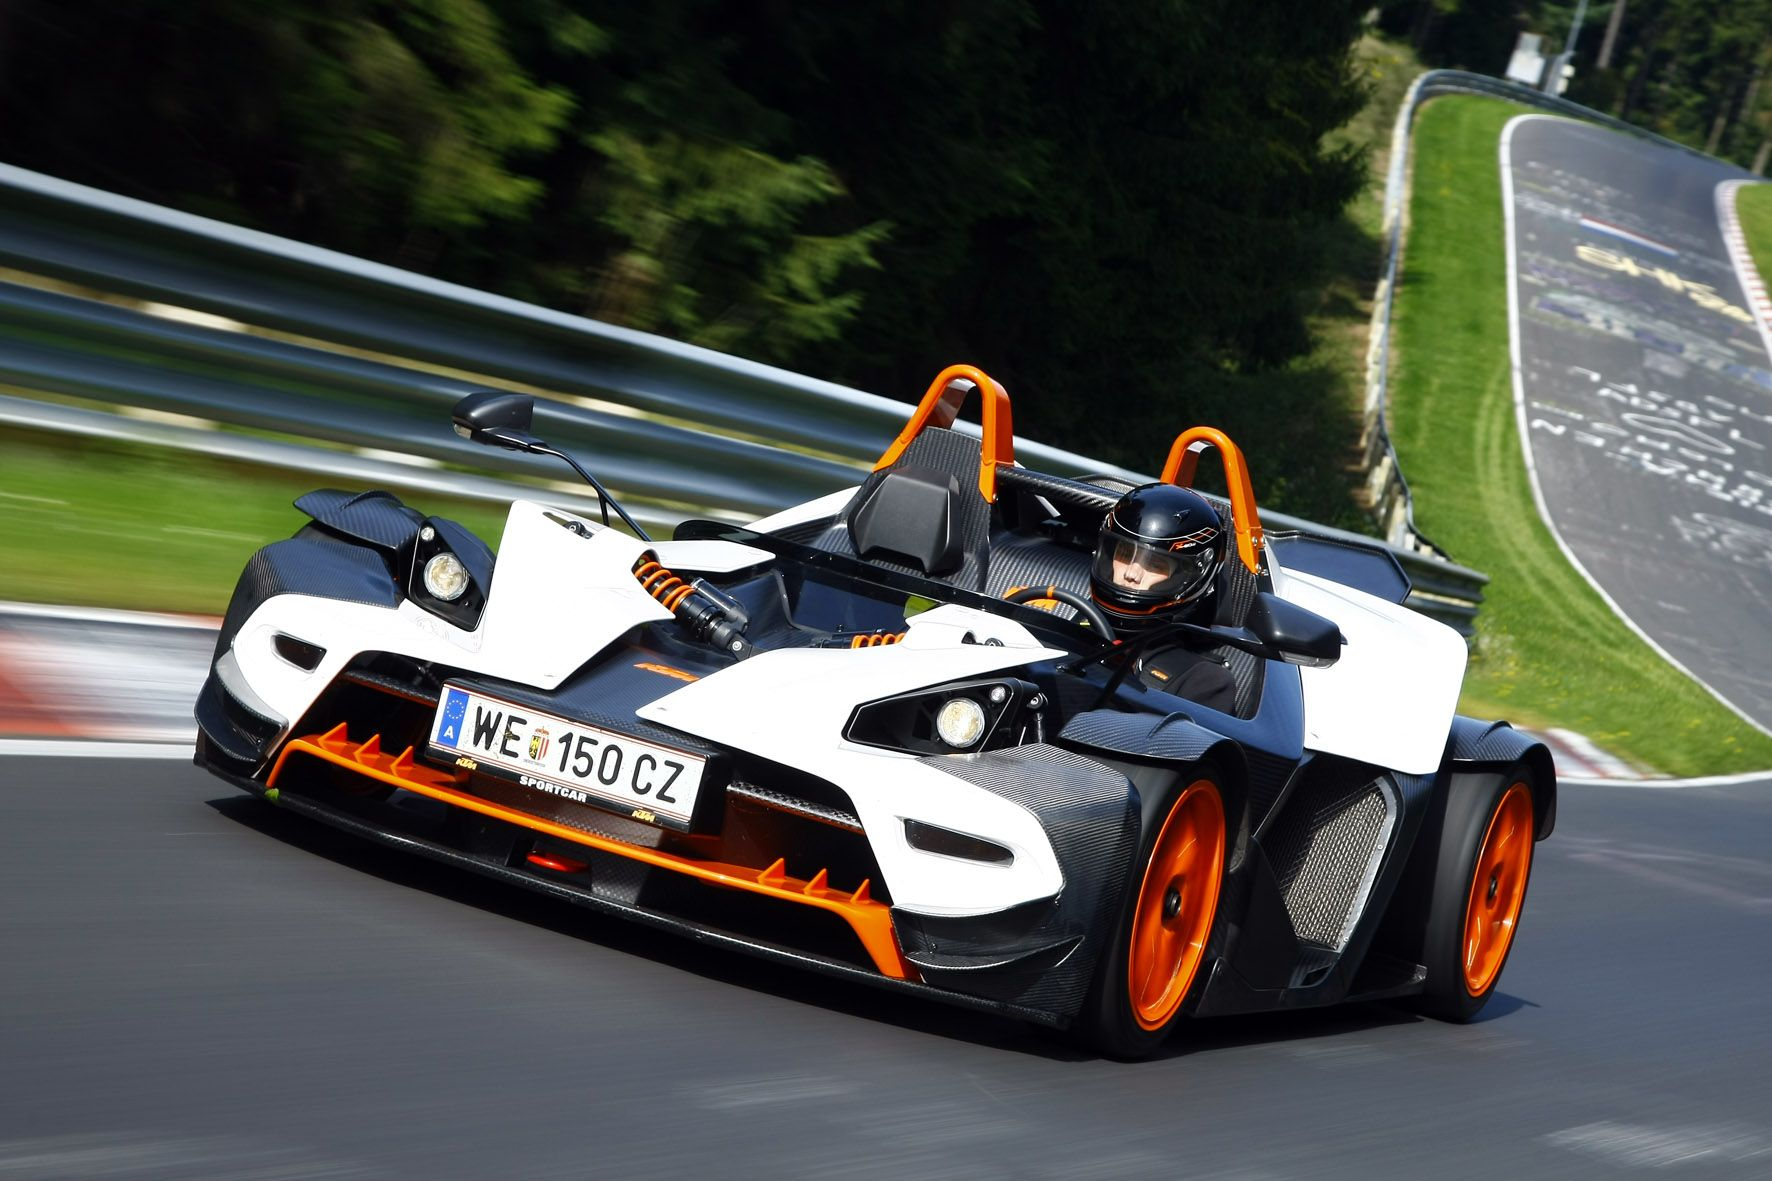 2011 KTM X-BOW R - That's right.. this car is made by KTM! #custom #ktm